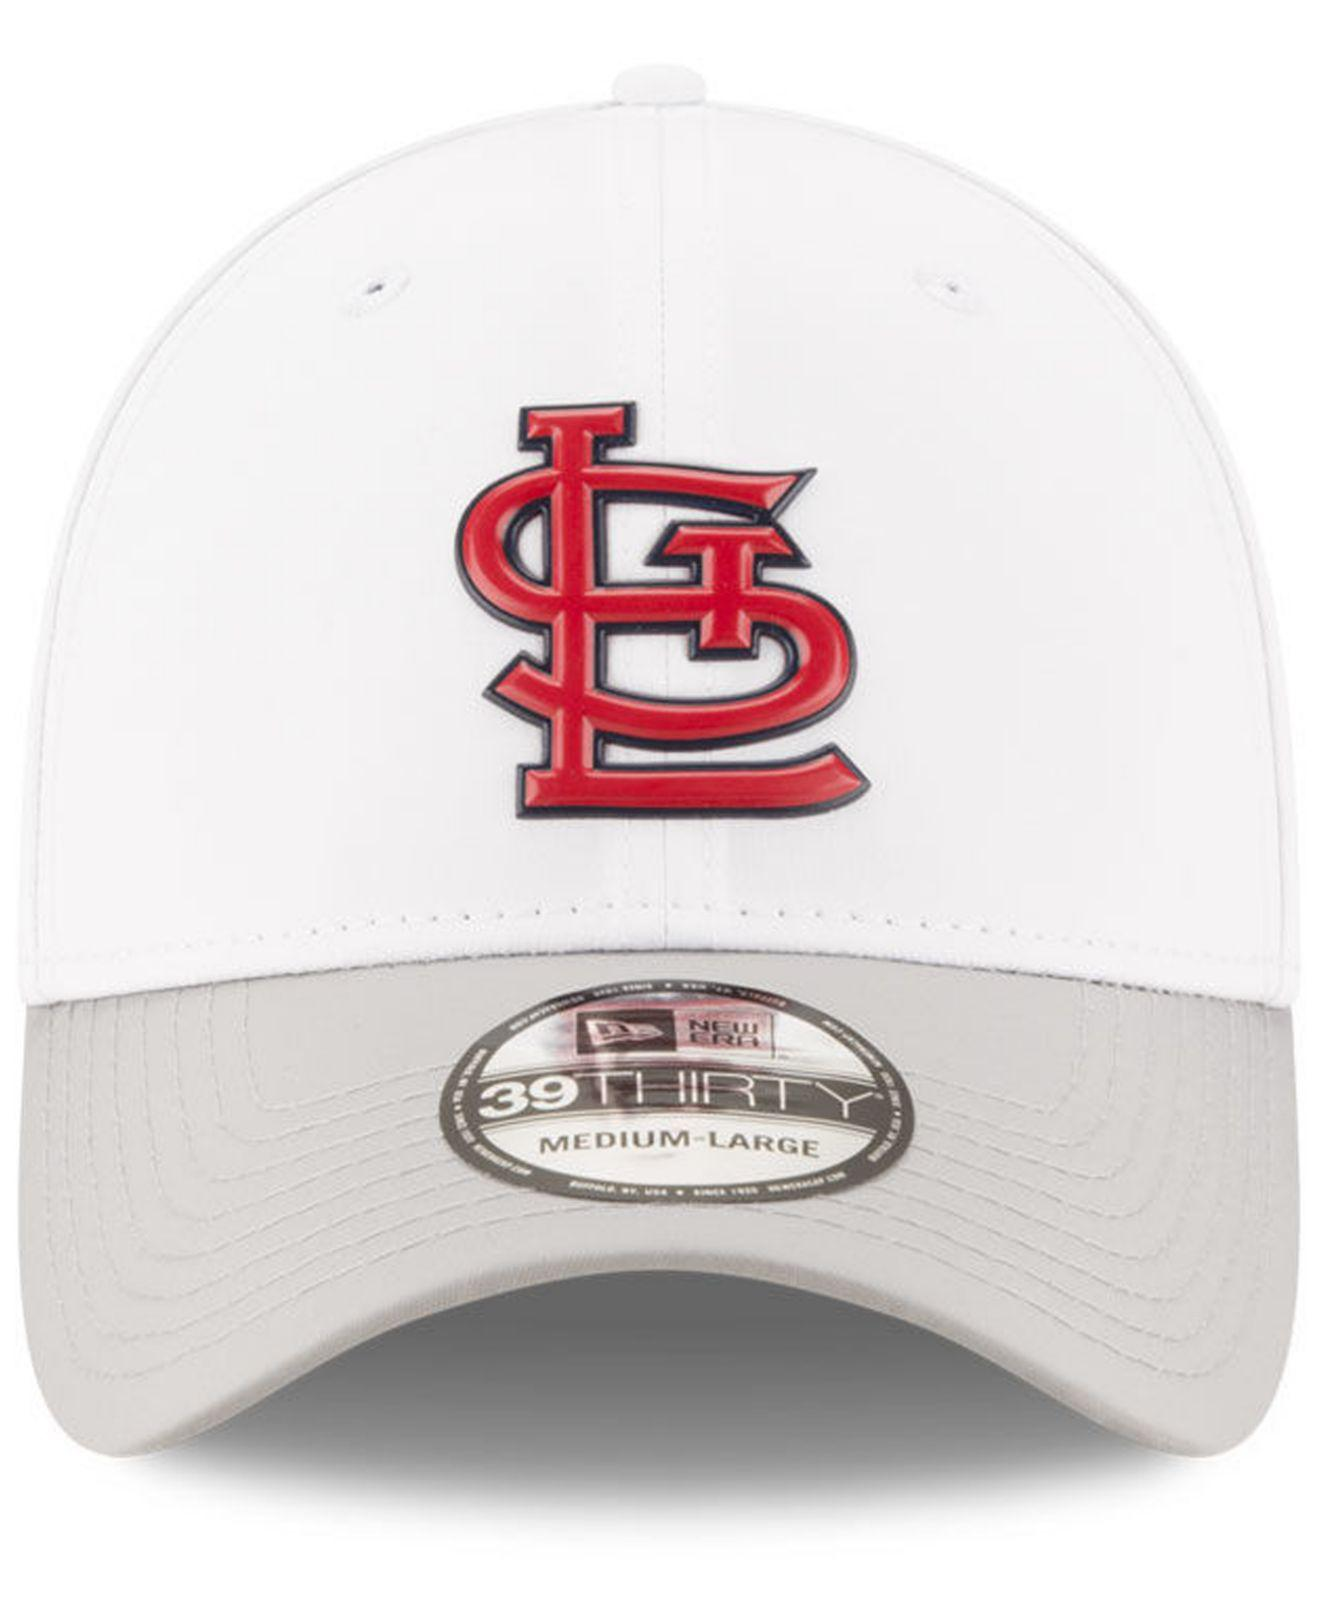 new style fc283 06833 ... get lyst ktz st. louis cardinals white batting practice 39thirty cap in  white for men